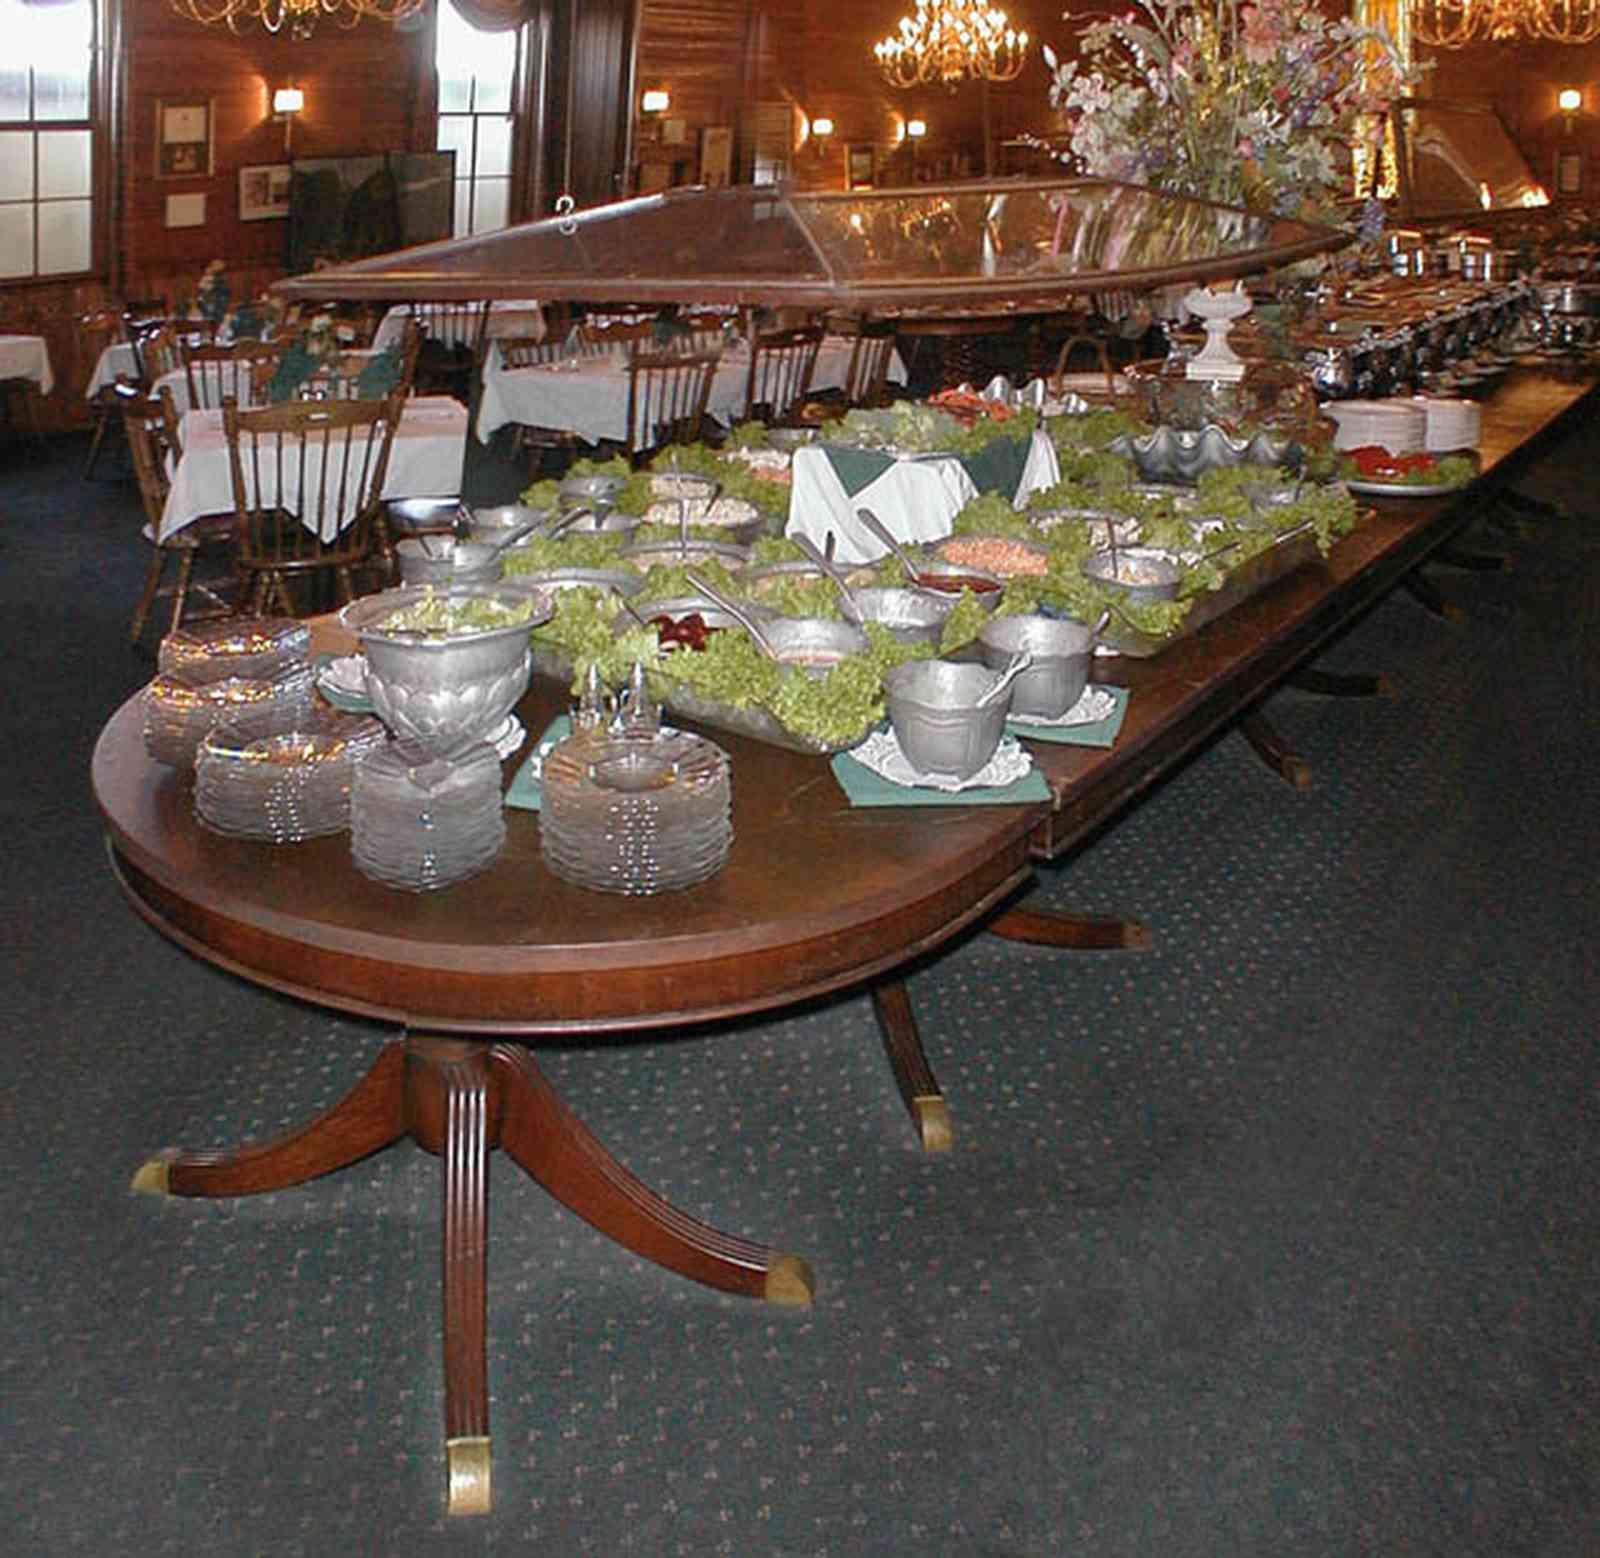 Foley:-The-Gift-Horse-Restaurant_04.jpg:  buffet table, restaurant, chandelier, leaded glass doors, duncan phyfe table, silver compote